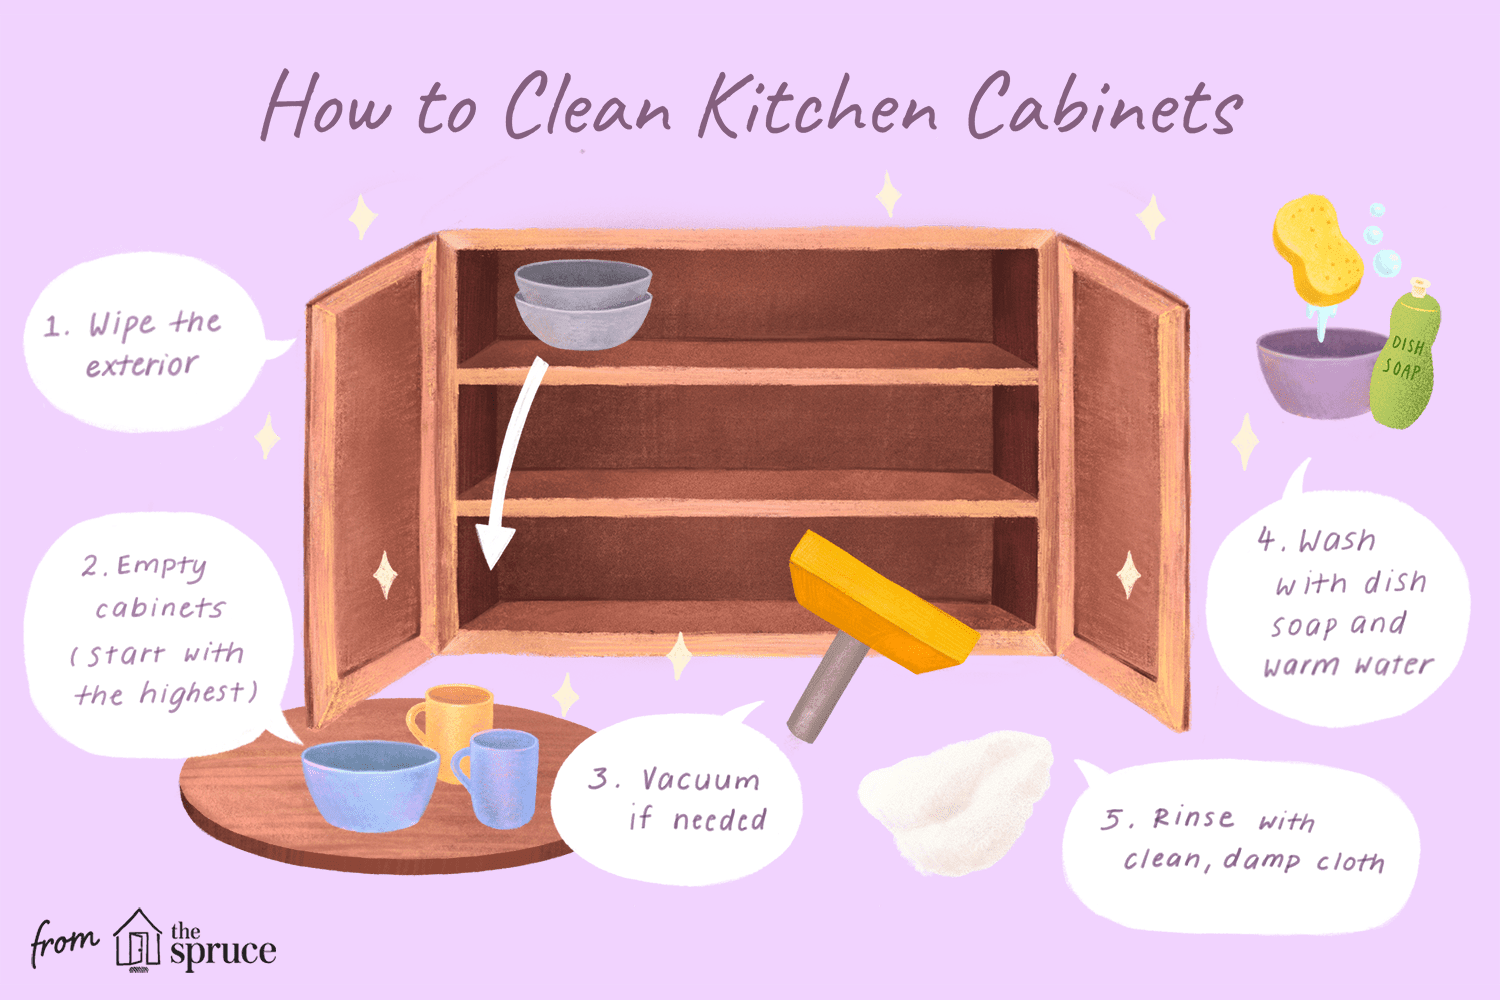 Steps to Clean and Remove Grease from Kitchen Cabinets